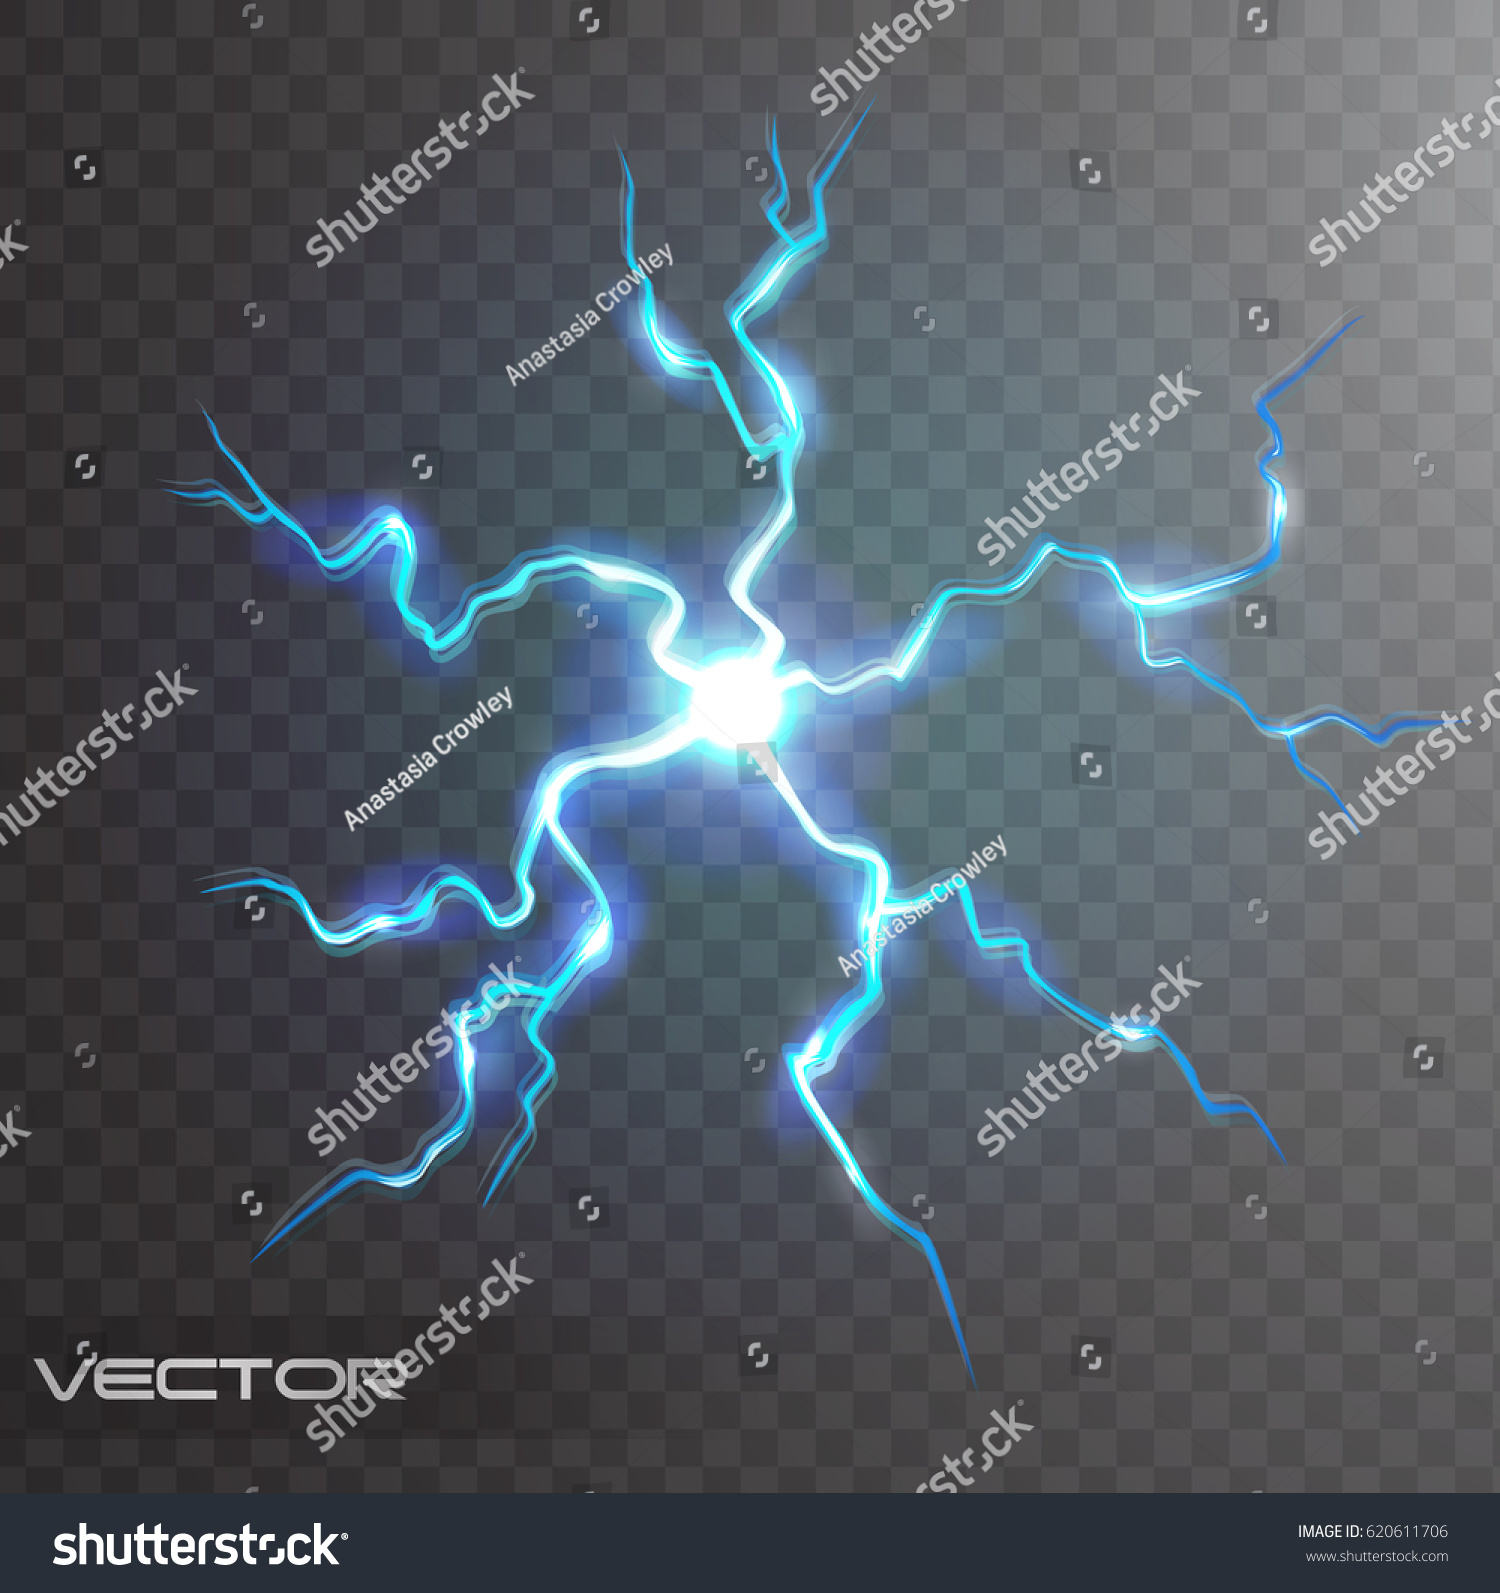 Isolated Realistic Lightning Bolt Transparency Design Stock Vector Royalty Free 620611706